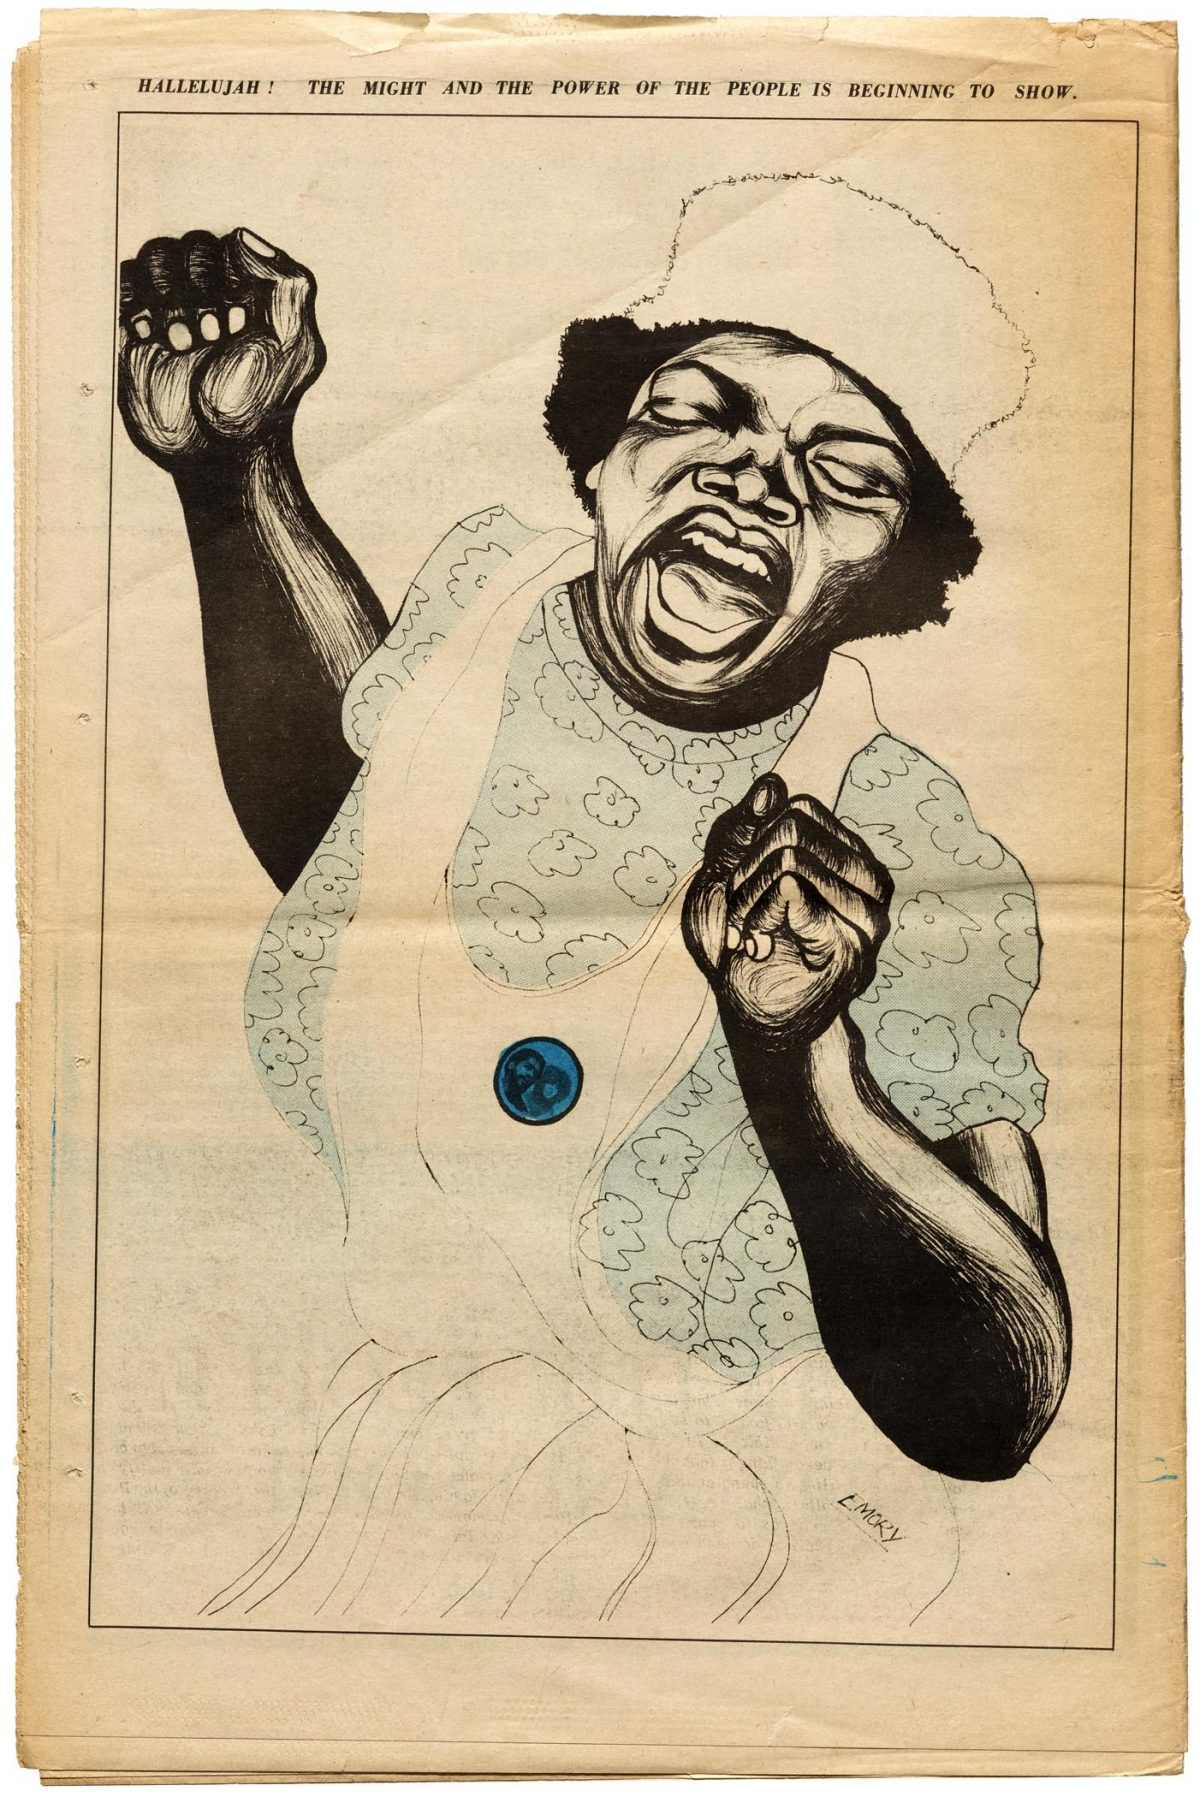 The Radical Art of The Black Panther, the Revolution's Newspaper